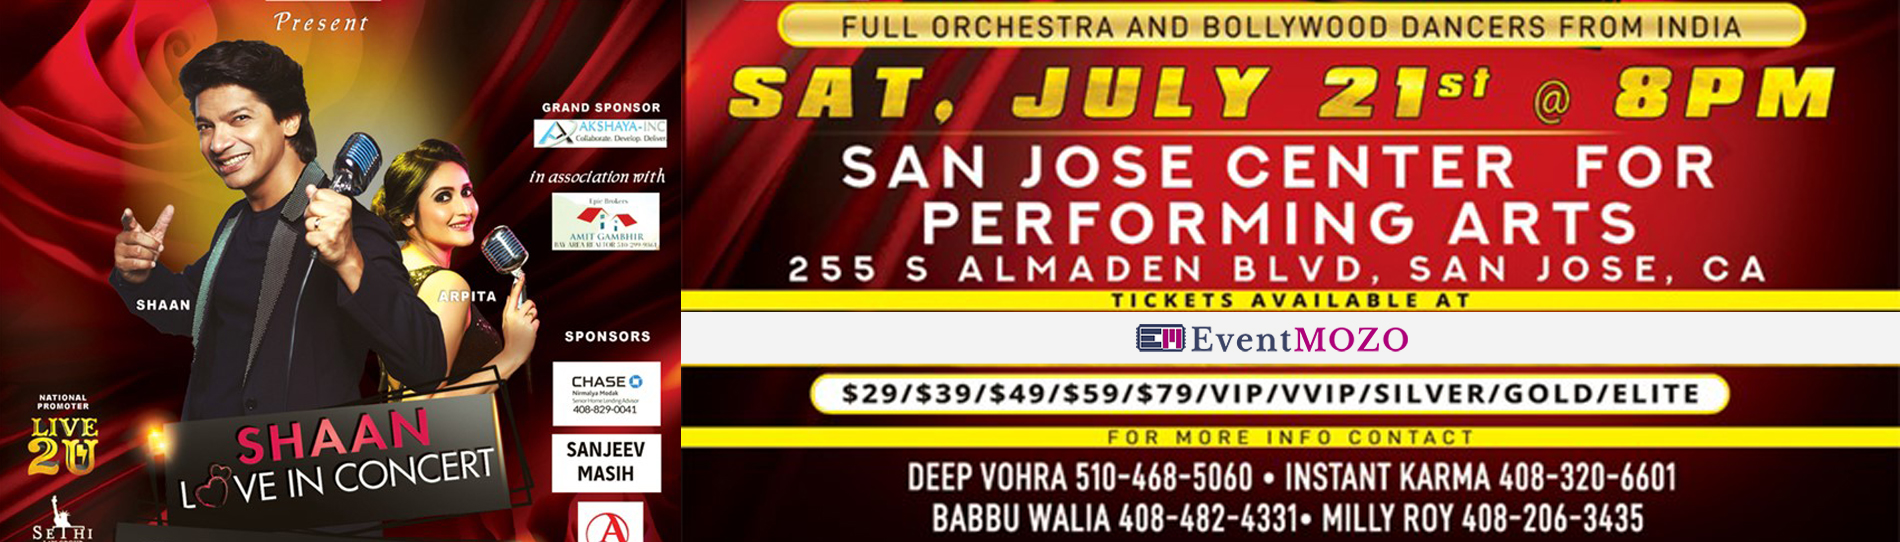 EventMozo Shaan LIVE In Concert - Bay Area